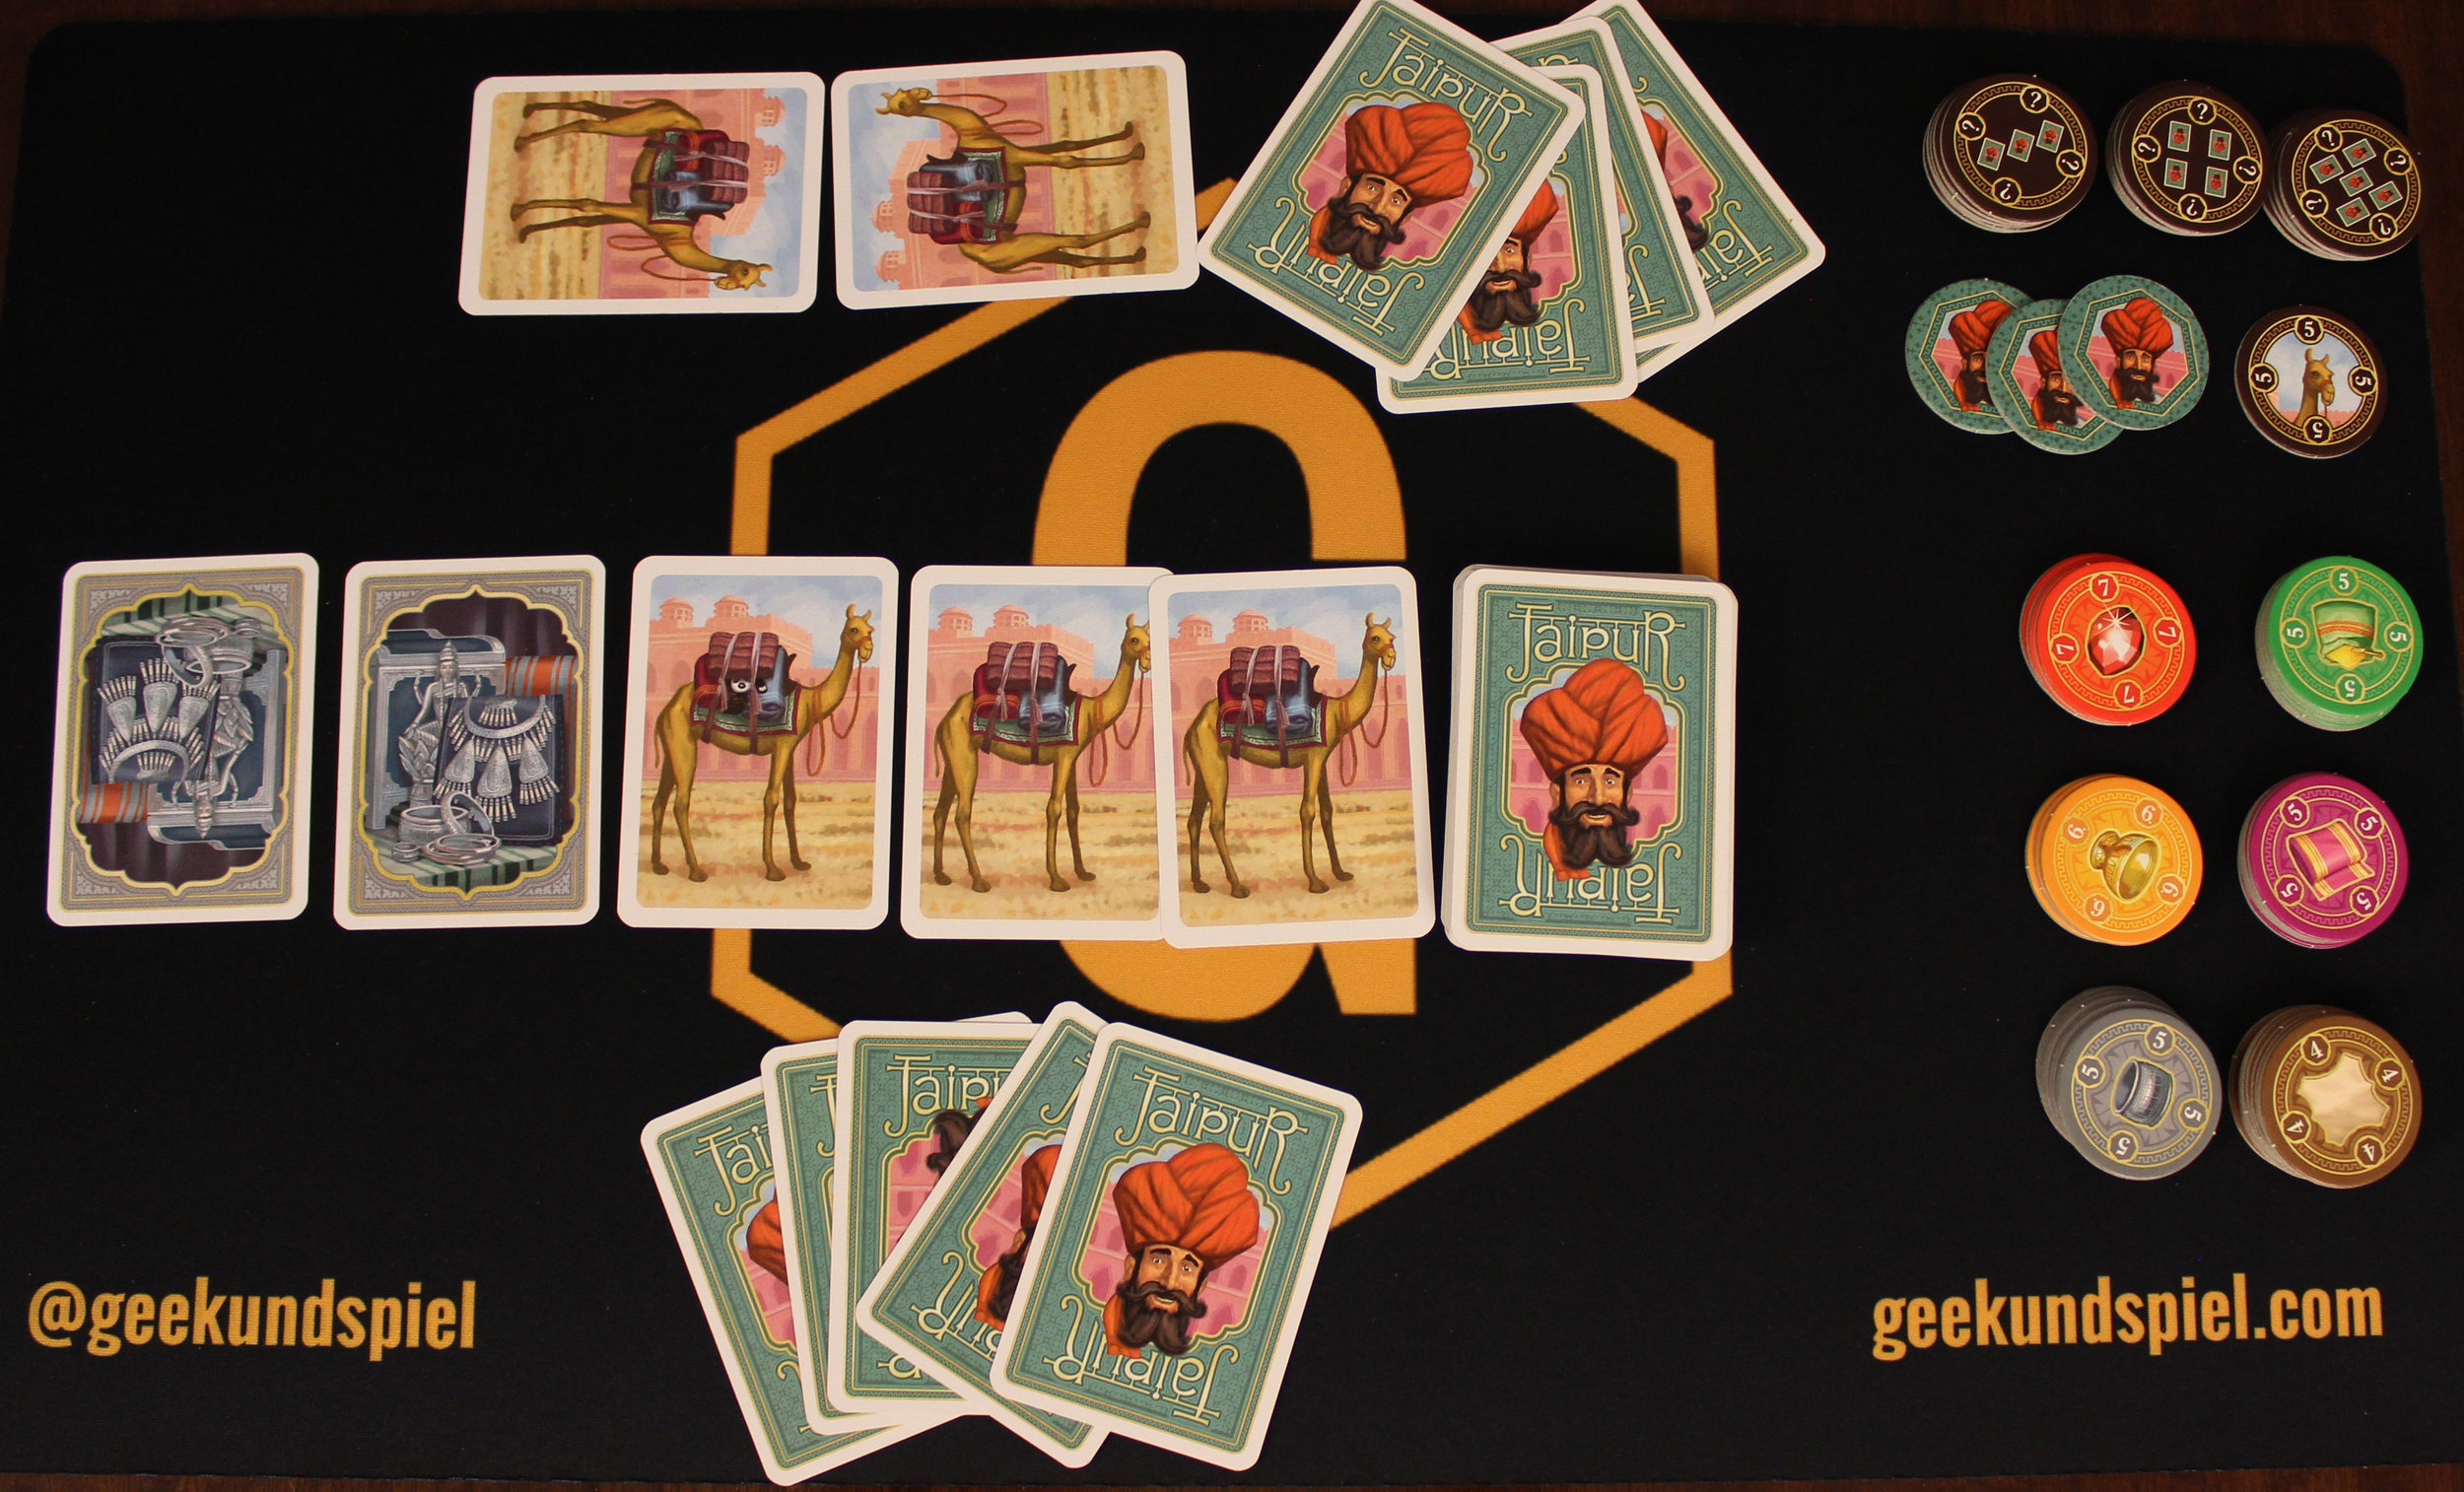 Game setup. Notice how the bottom player has no camels, but the top player is starting with two. The chips for sold cards are on the right, the bonus chips are at the top, and the three green chips with the person's face are given out for each round one.